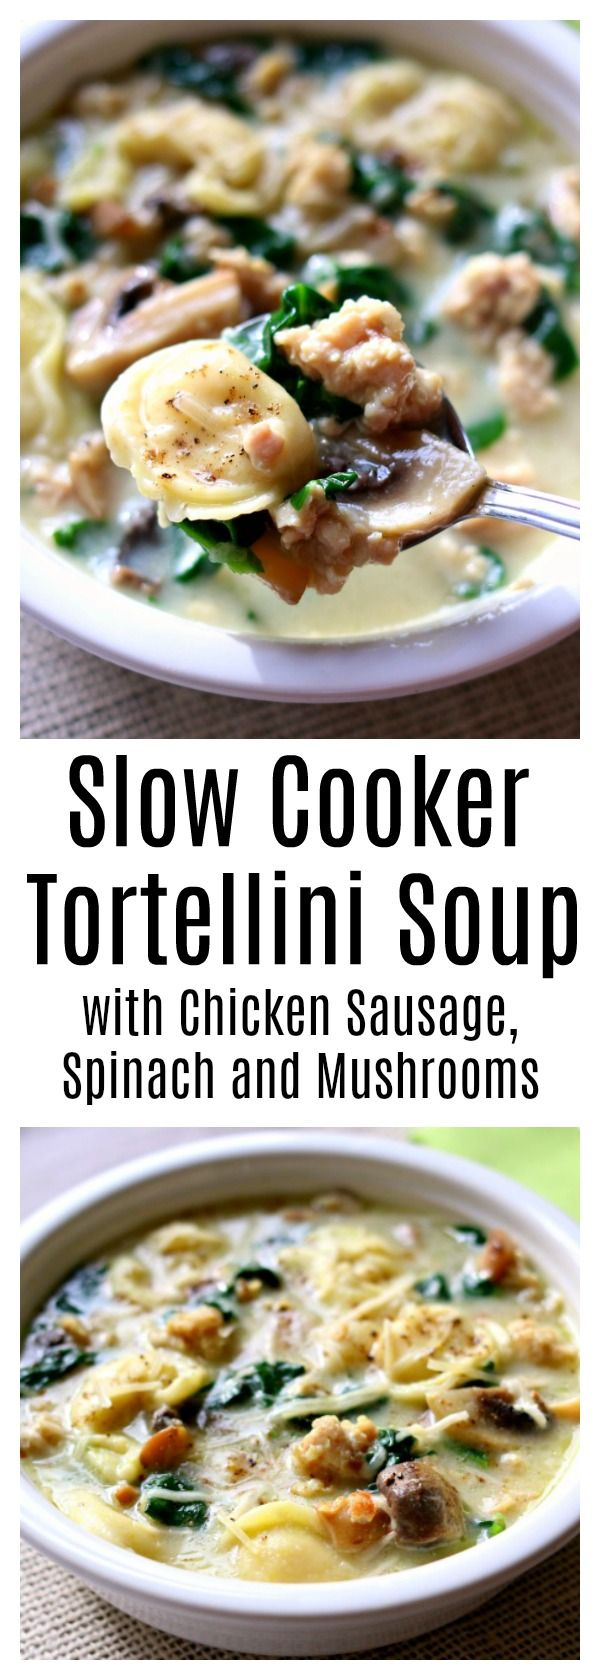 """Slow Cooker Tortellini Soup with Parmesan, Chicken Sausage and Mushrooms needs to make its place on your menu this week. My husband said """"this is maybe the best soup I've ever had!"""" It's slightly creamy (but doesn't go overboard with dairy) and has amazing flavor thanks to the chicken sausage. It also has a nice pop of color from the chopped spinach."""